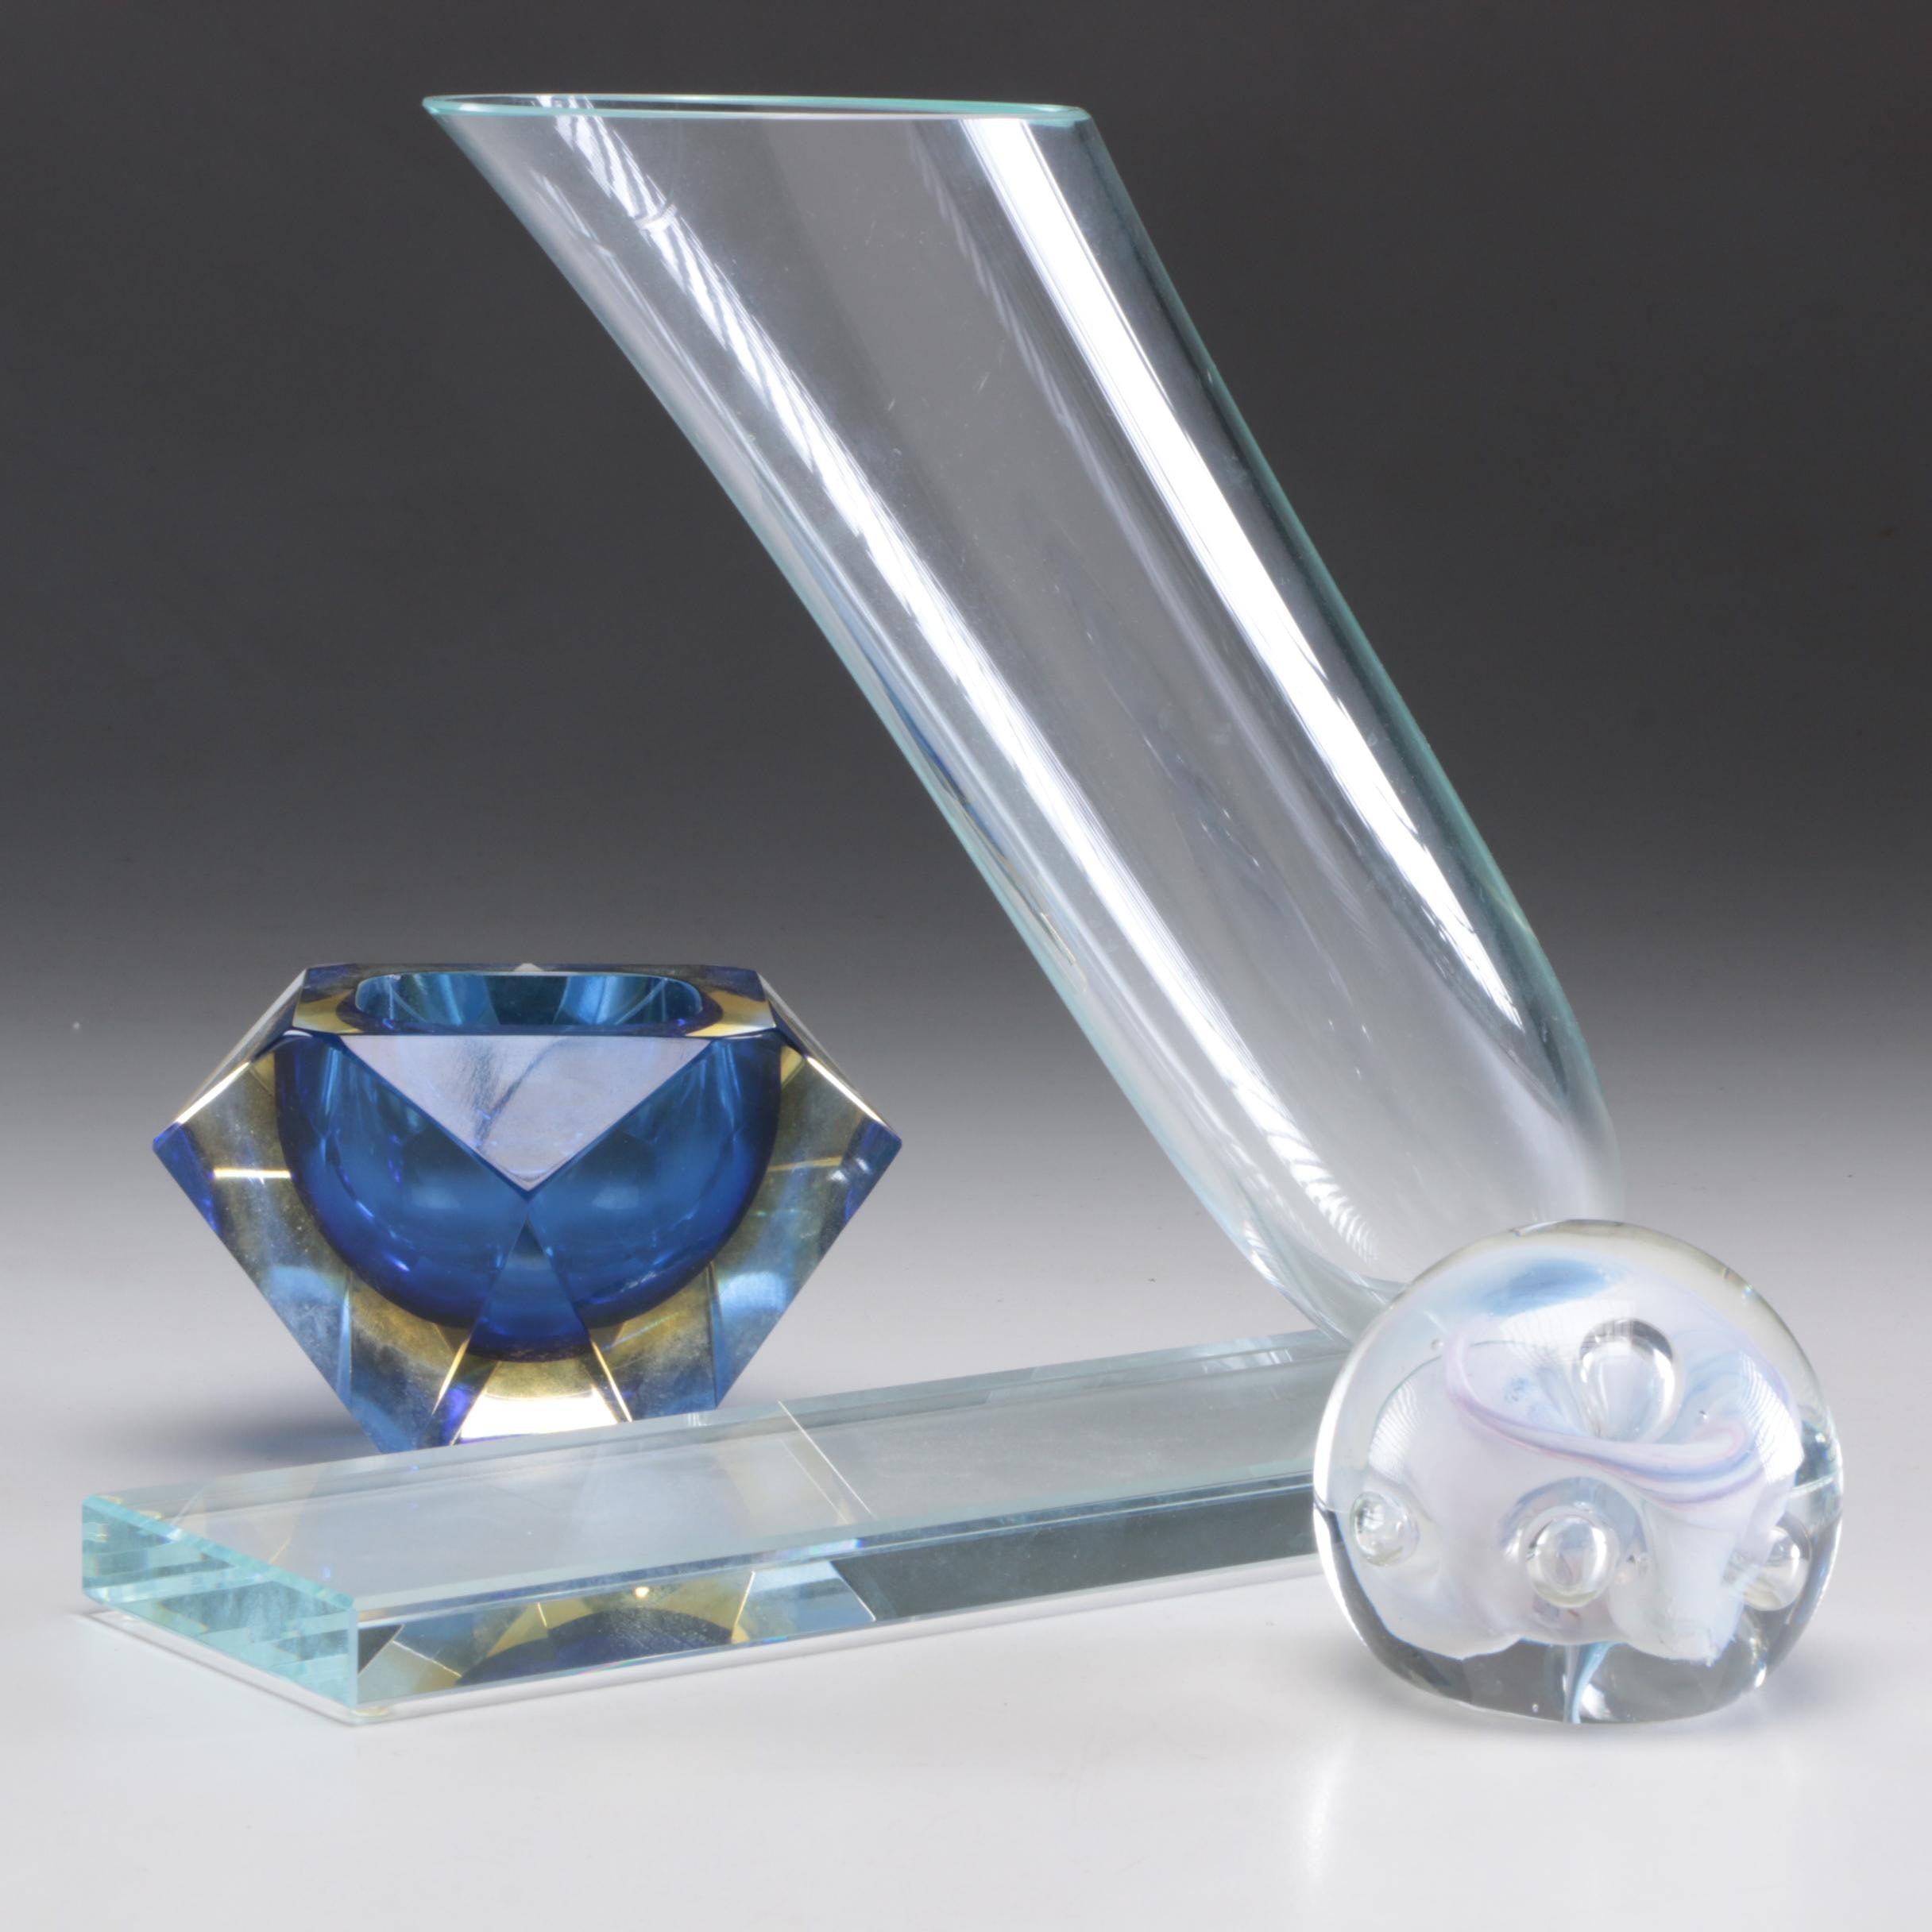 Art Glass Vase, Trinket Bowl, and Paperweight